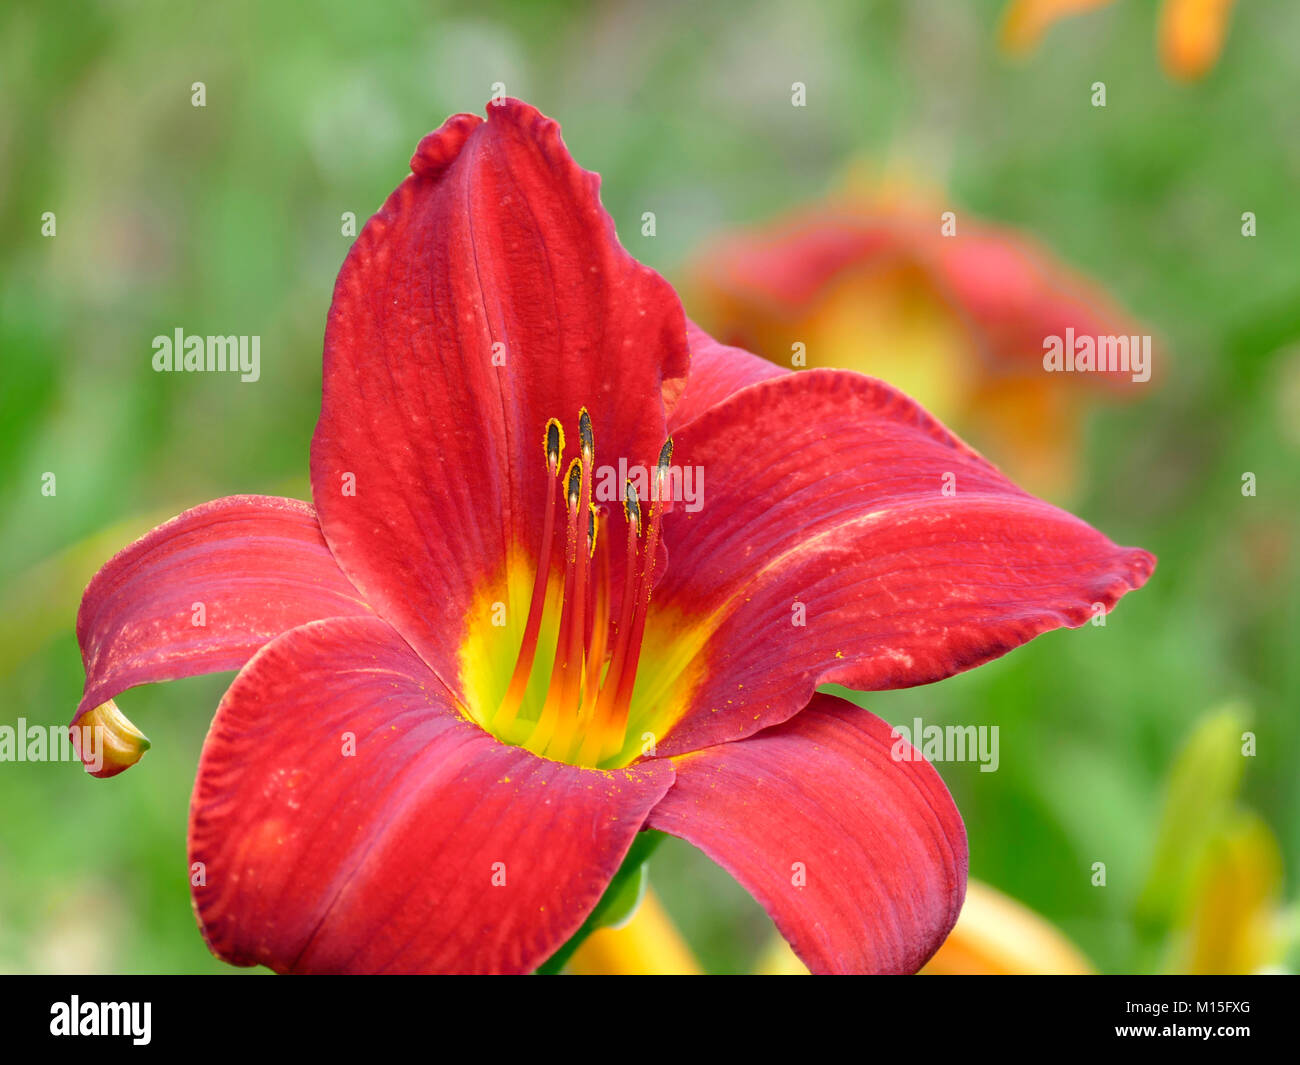 Peaceful Close-Up DayLily in Home Botanical Garden of Lilies Stock Photo